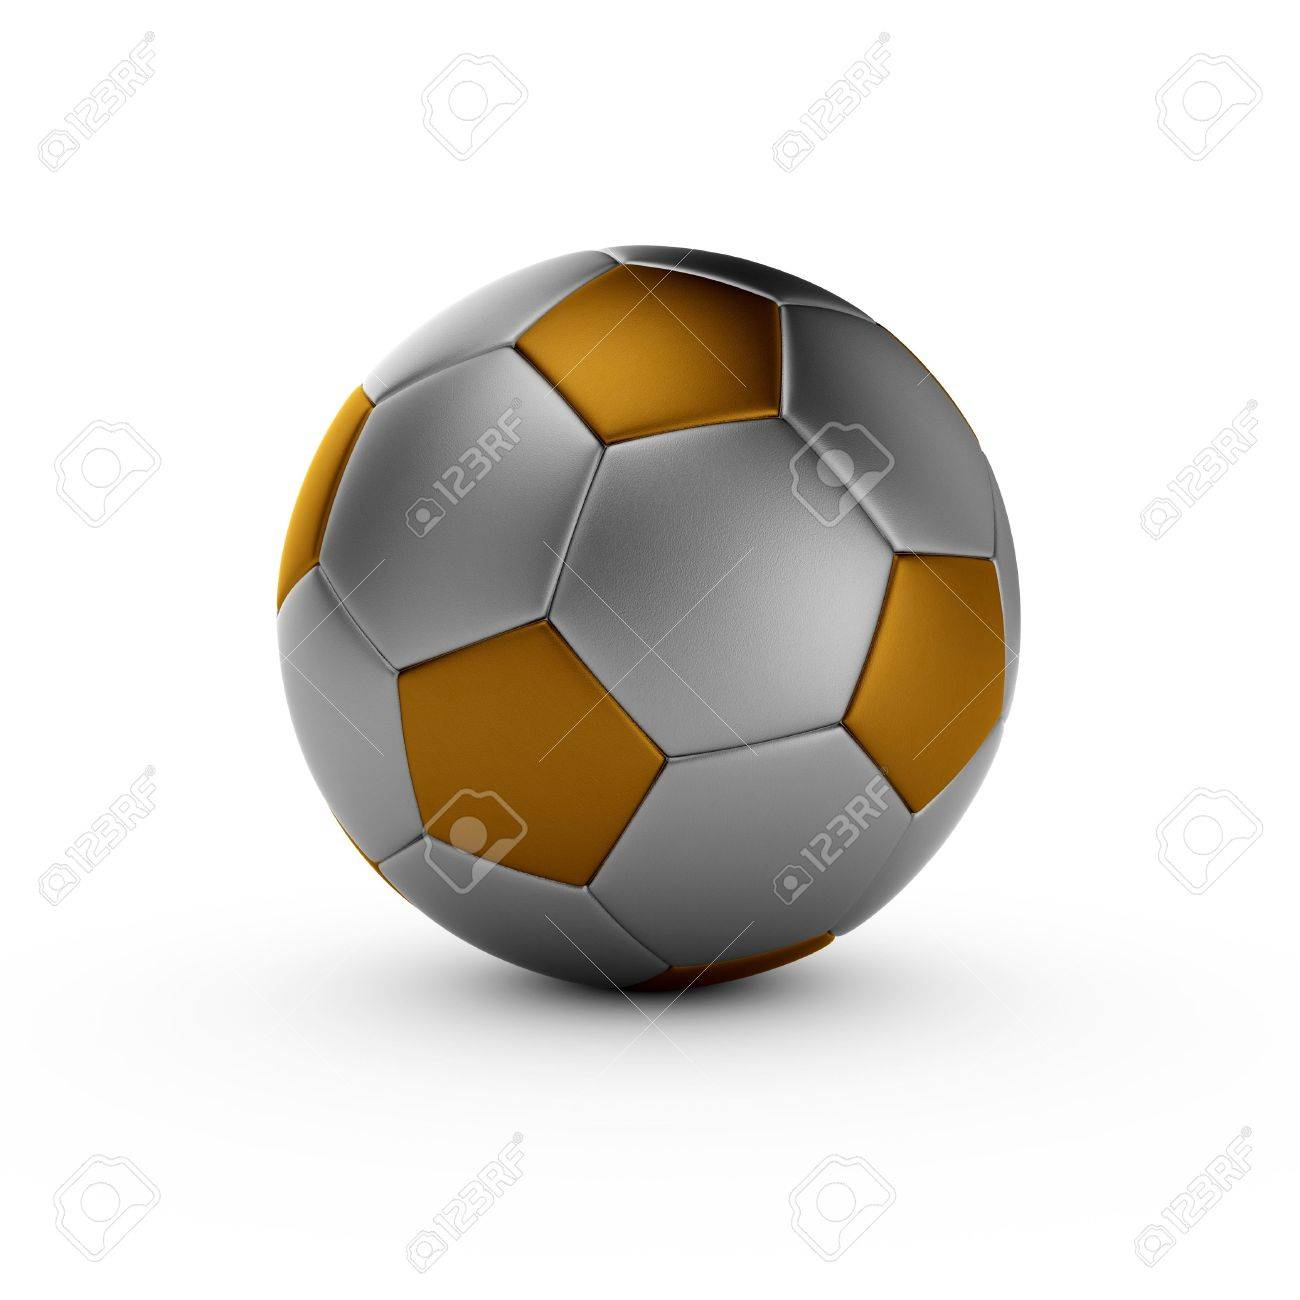 3d render of gold soccer ball isolated on white background Stock Photo - 14021460